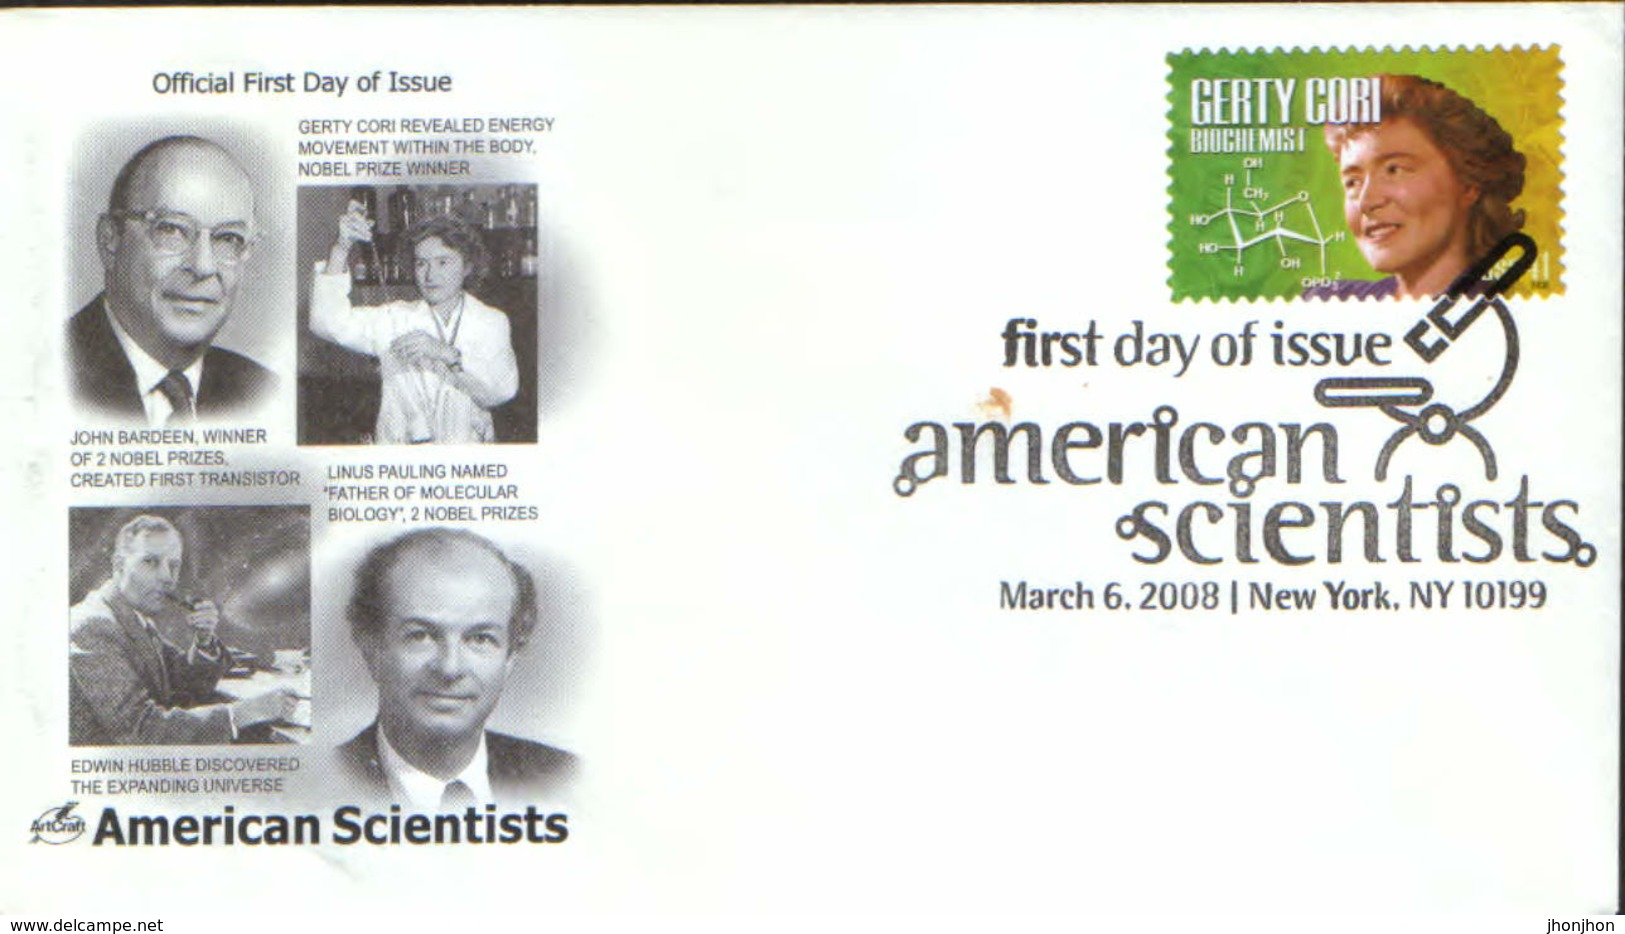 USA - Cover The First Day  2008 - Gerty Cori ,biochemist, Nobel Prize Winner-Revealed Energy Movement Within The Body - Premio Nobel